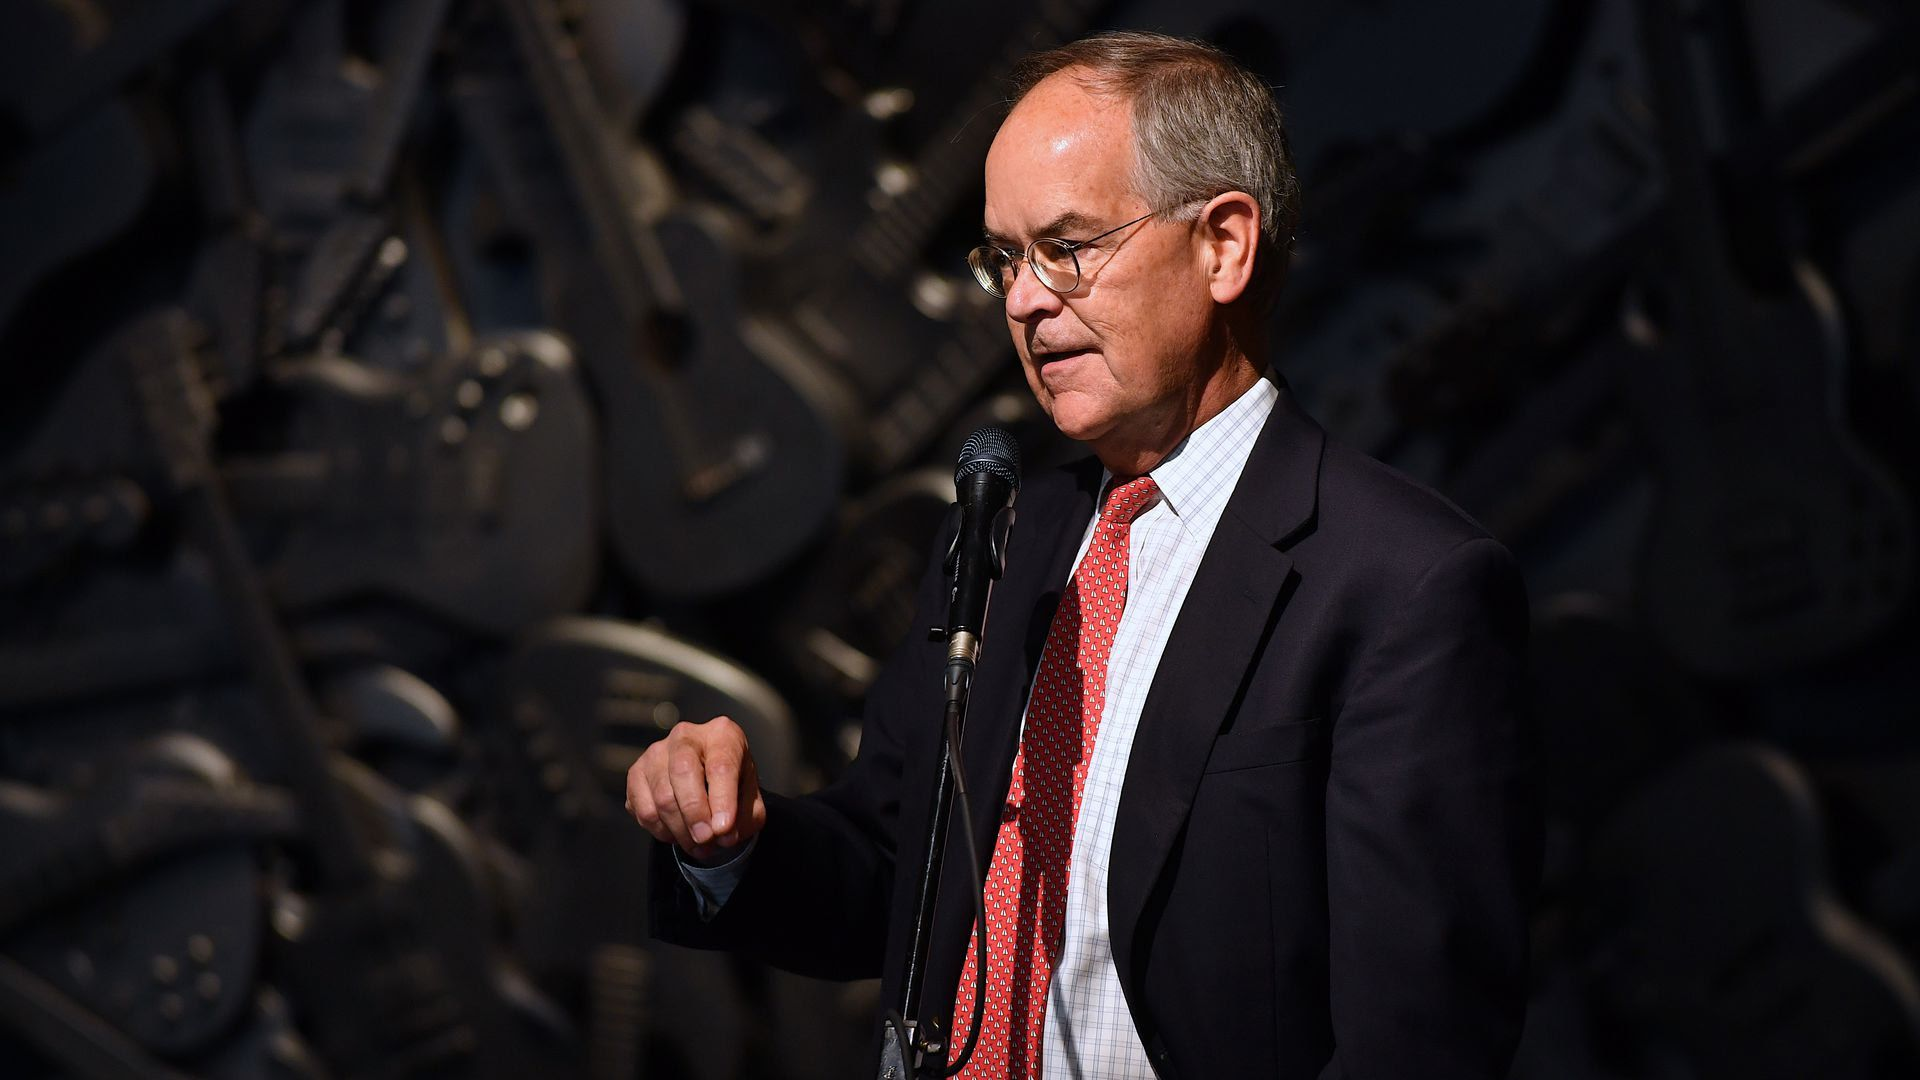 U.S. Rep. Jim Cooper speaks on stage in front of a microphone.